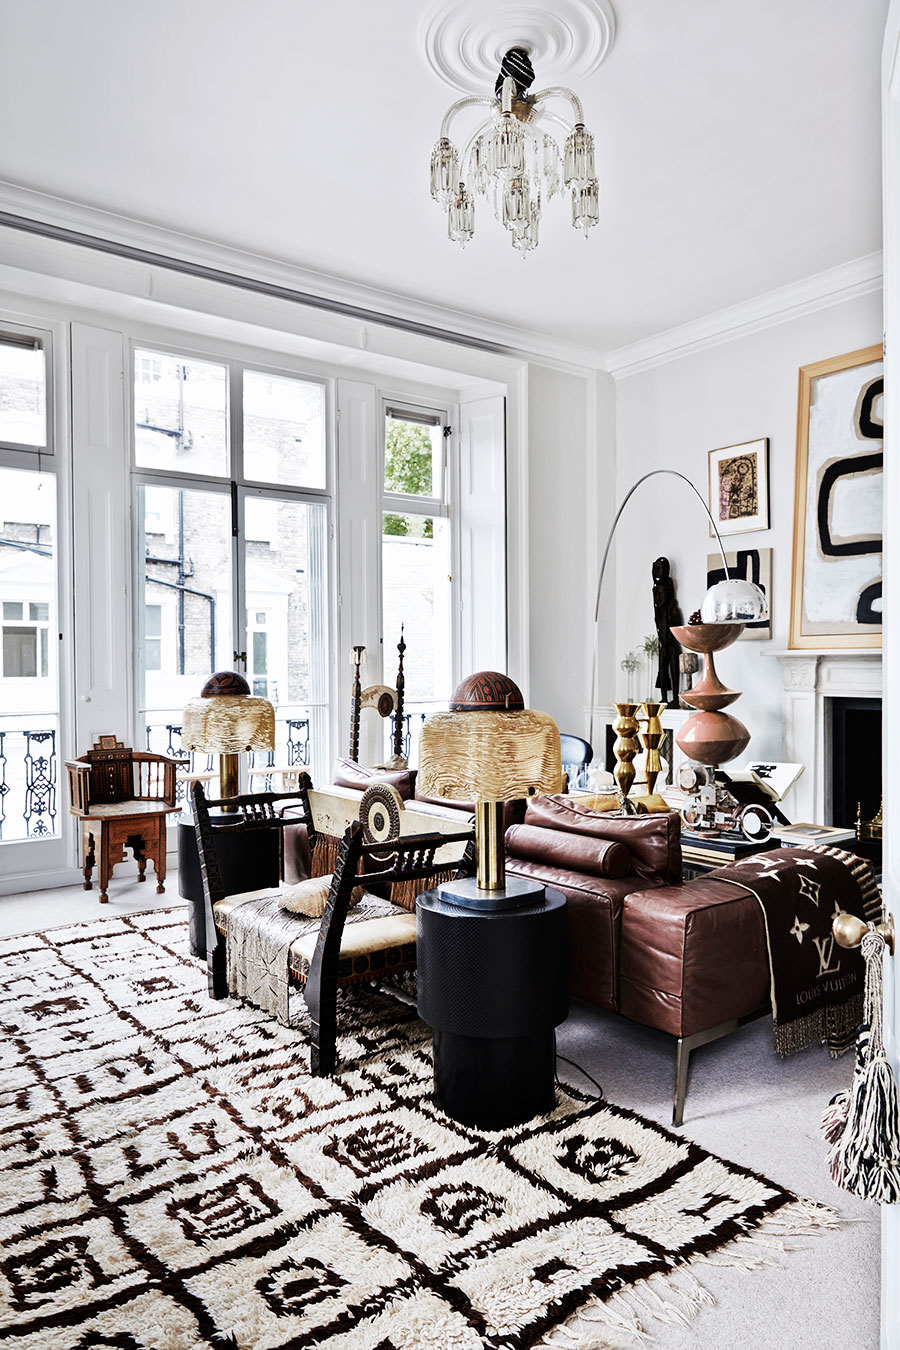 amazing boho chic interior in london by malene birger. Black Bedroom Furniture Sets. Home Design Ideas